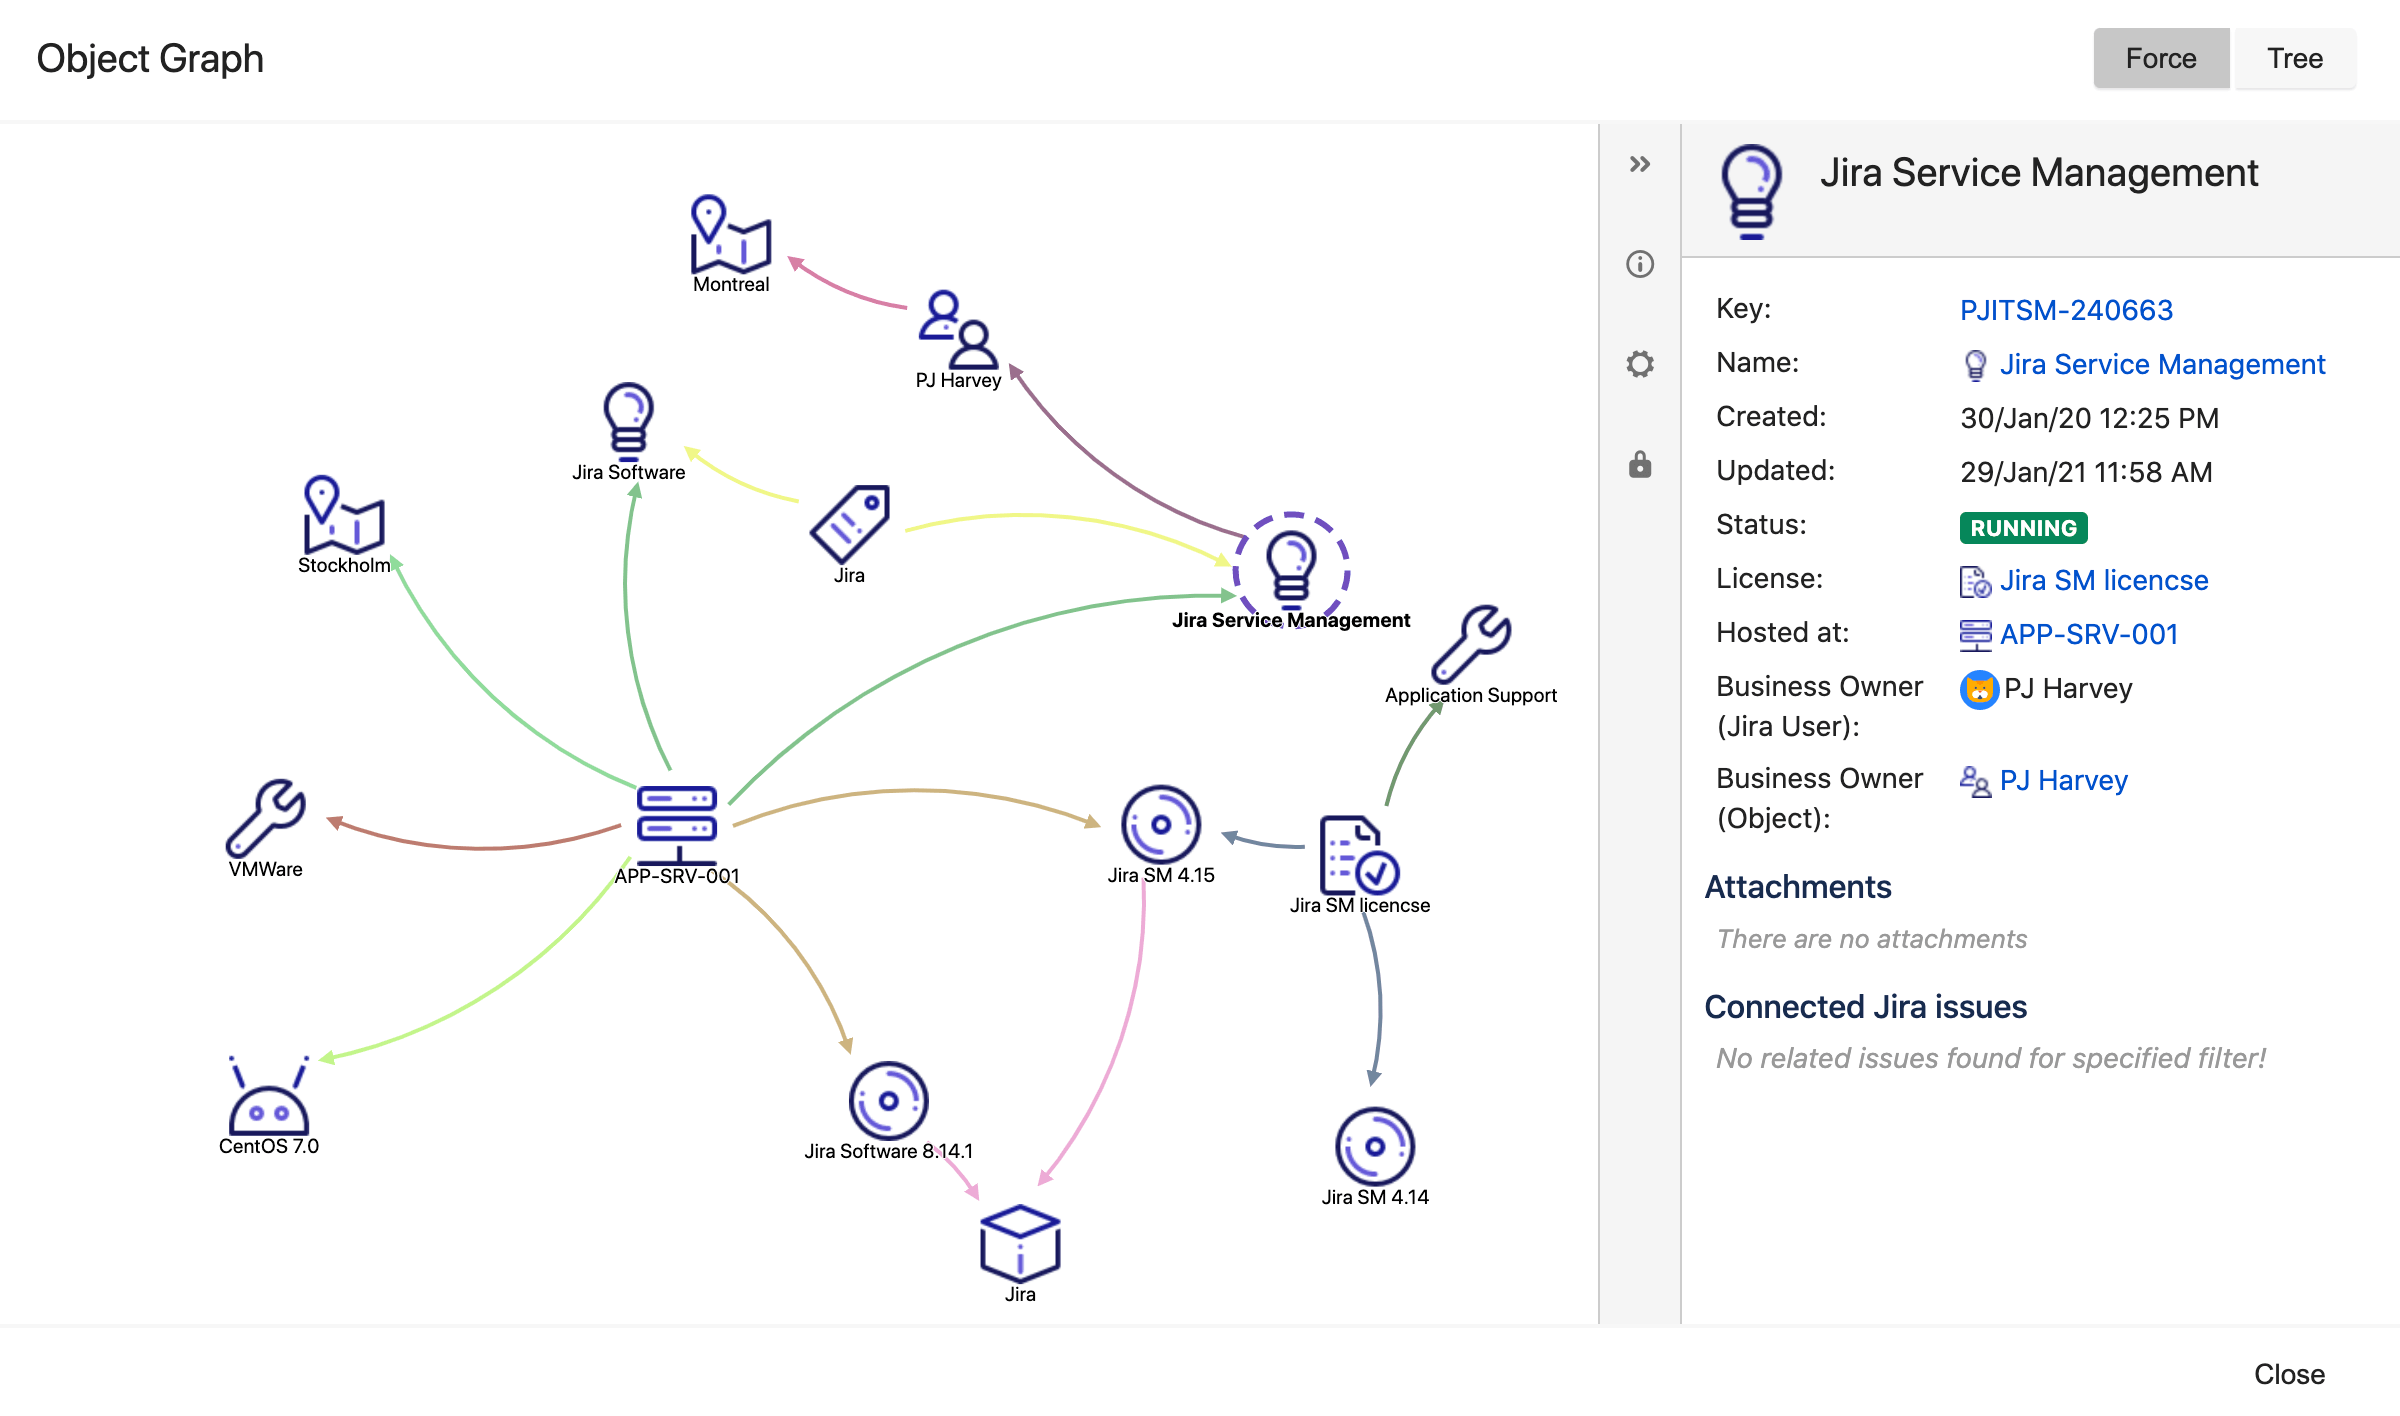 Insight graphical viewer window for the object 'Jira Service Management'. Showing dependencies such as the hosts it's on, their OS, the different Jira versions it requires, and the license.